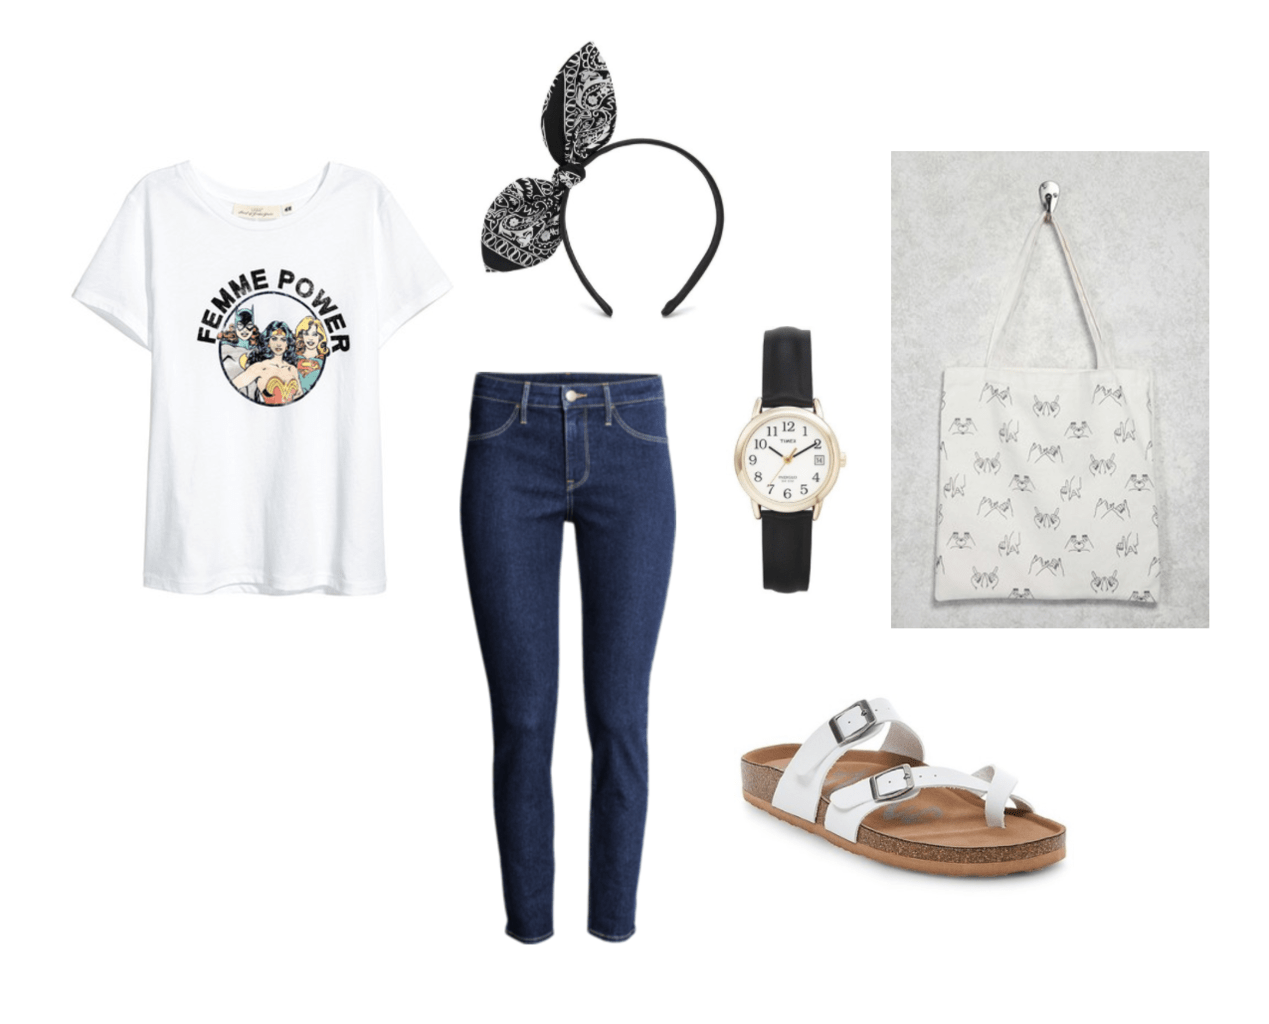 How to wear a graphic tee: Outfit under $100 with dark wash skinny jeans, Femme Power superhero tee shirt, black and gold watch, white footbed sandals, printed tote bag, bandana style headband